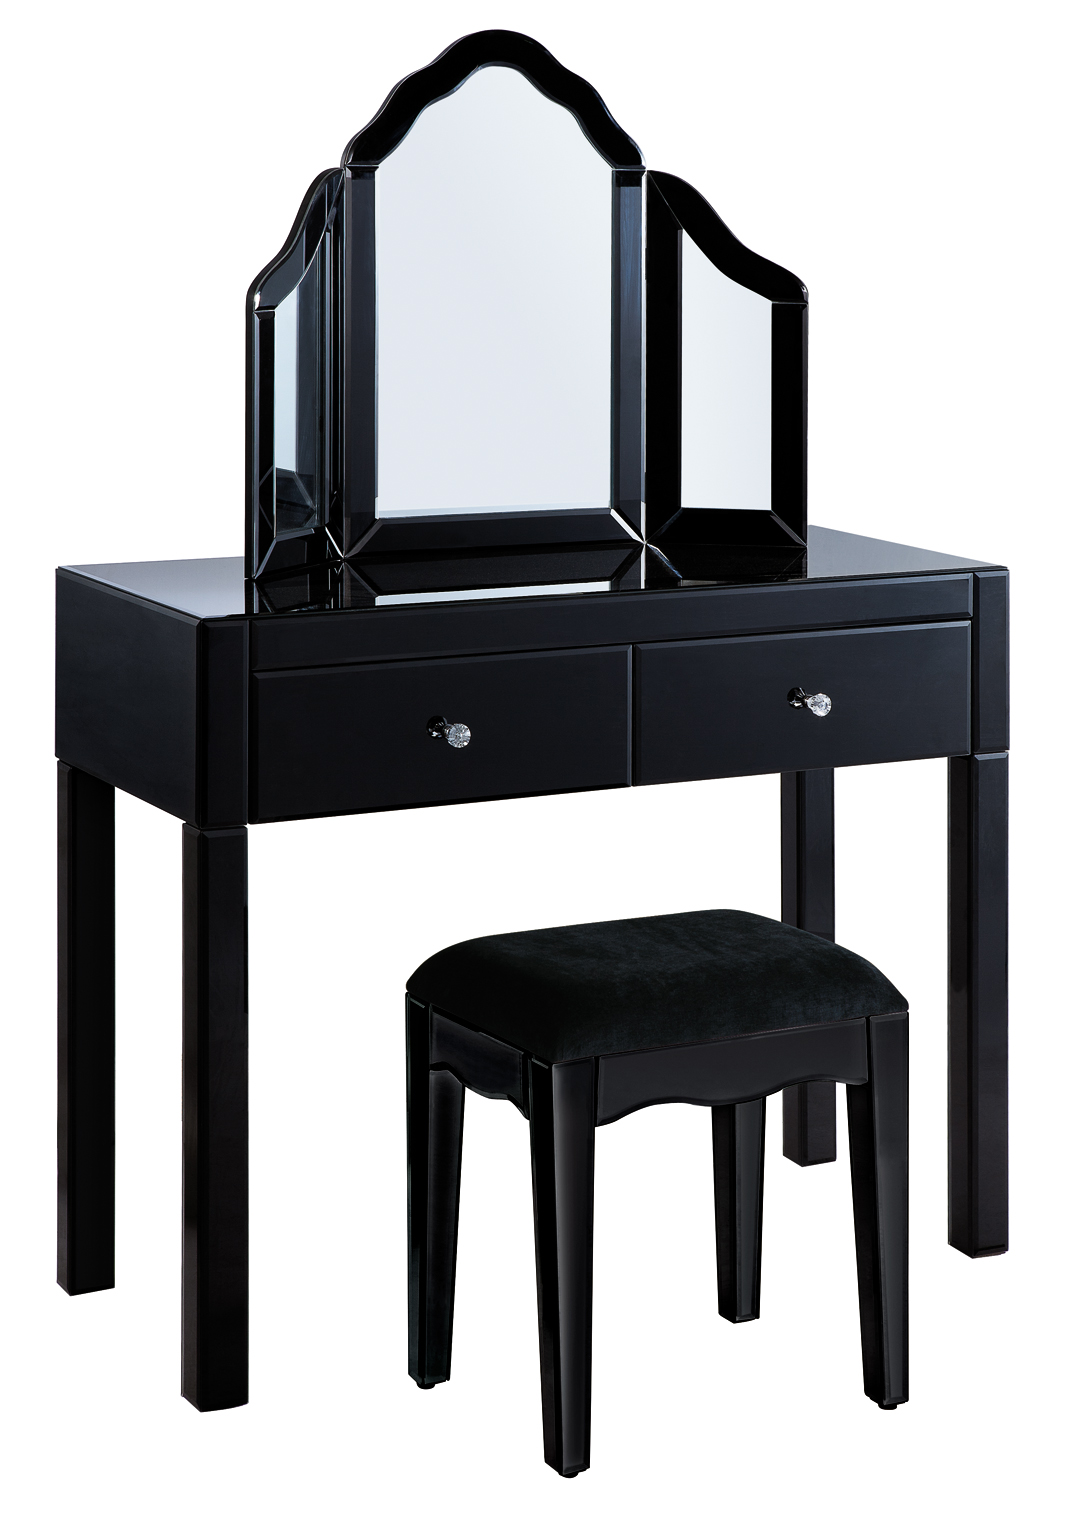 Mirrored Vanity Table And Stool: Mirrored Black 2 Draw Dressing Table + Mirror + Stool Package